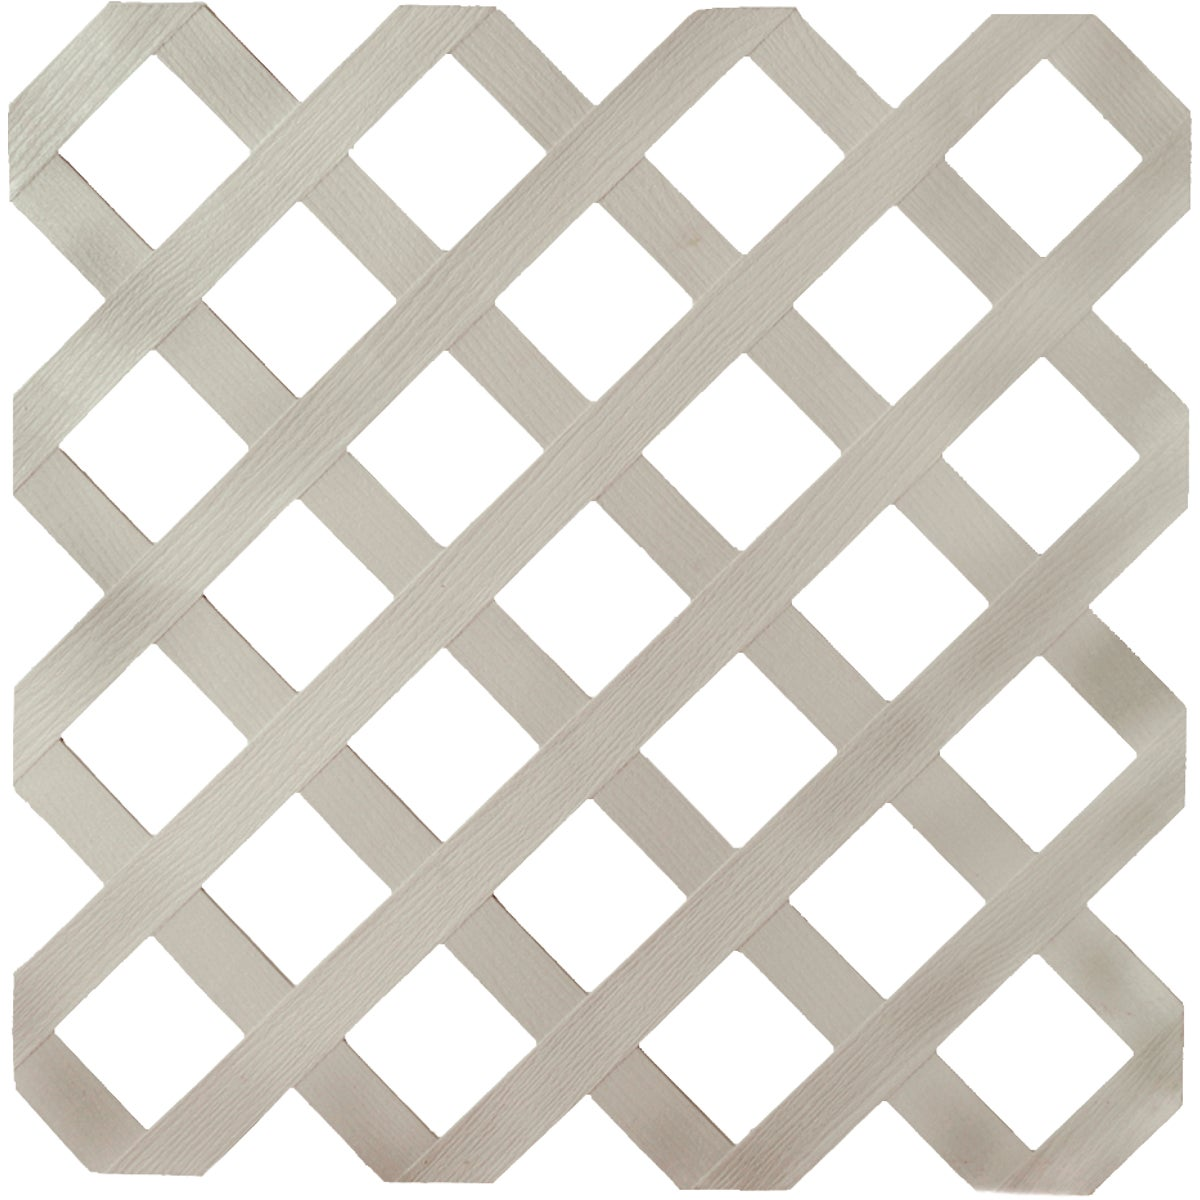 4X8 GRAY LATTICE - 79901 by Ufpi   Plstc Lattice